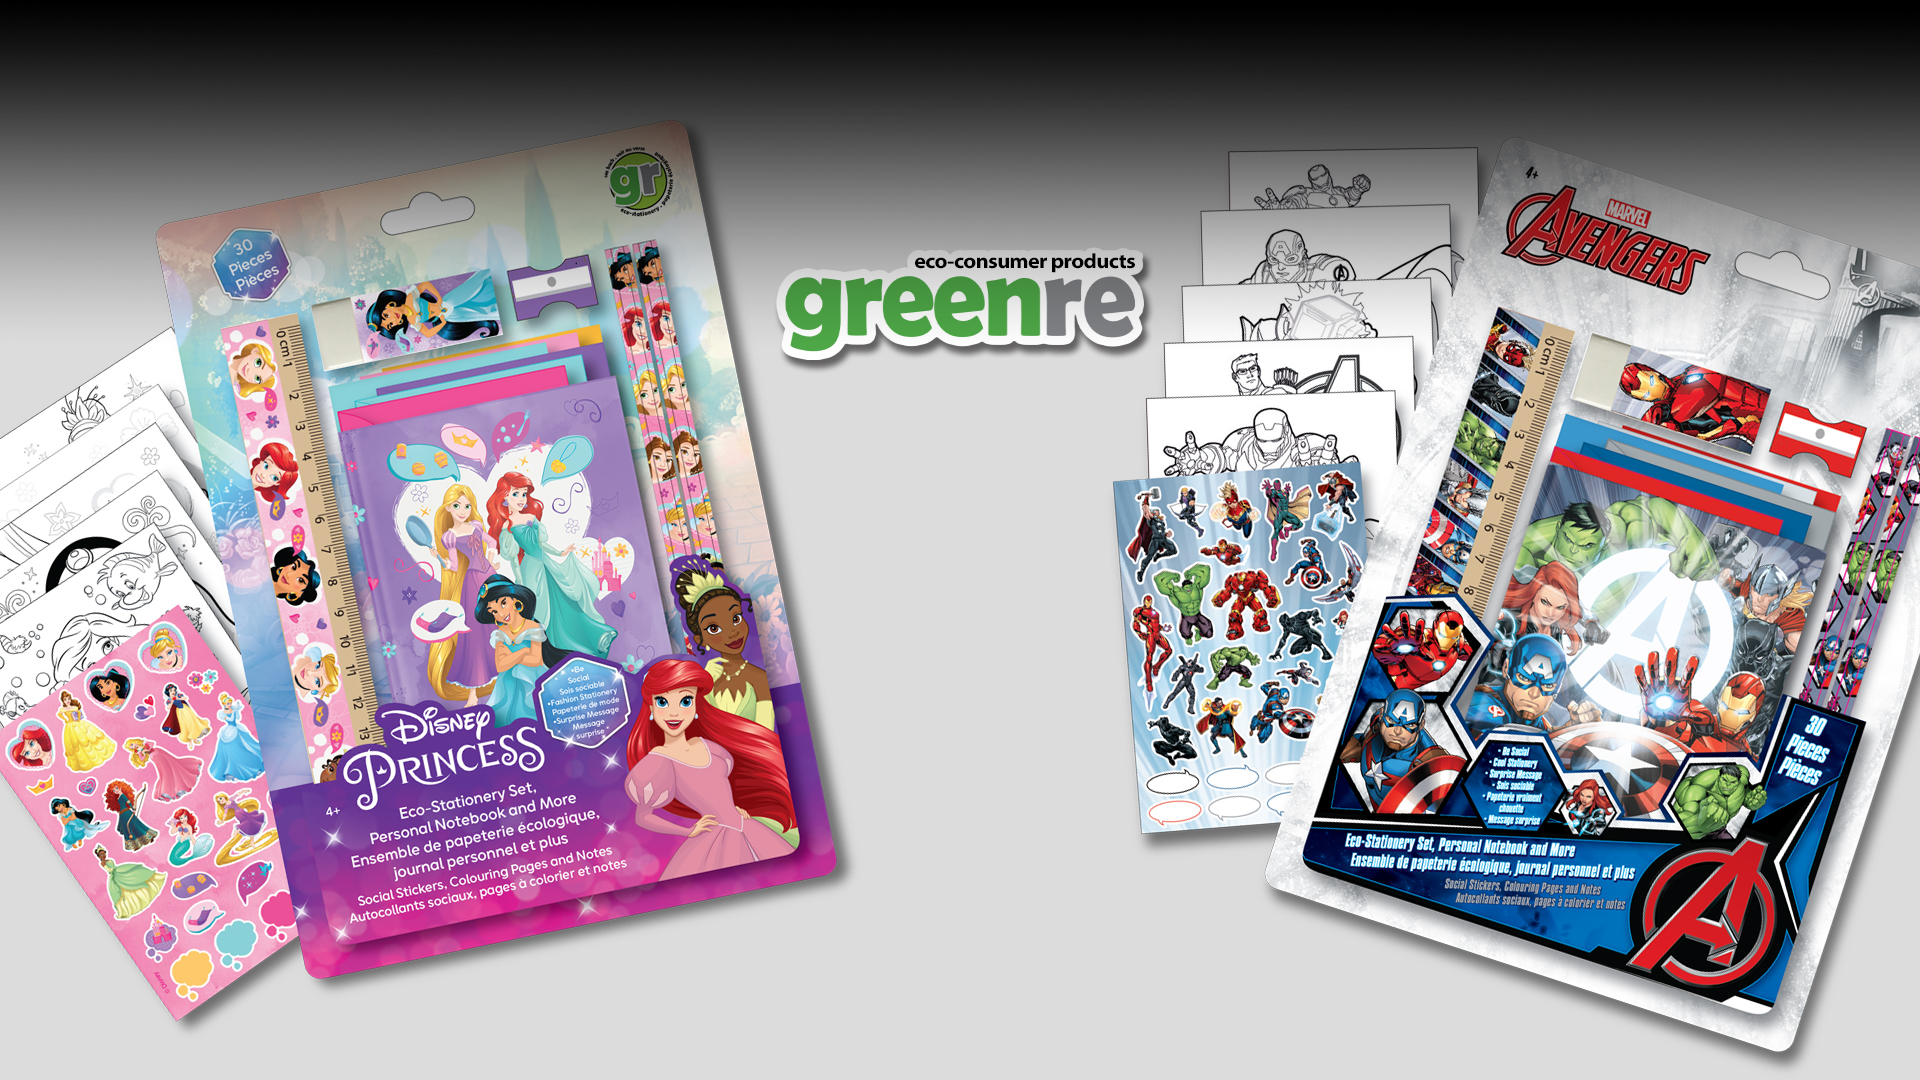 Disney Princess and Marvel's Avengers themed stationery and activity products.